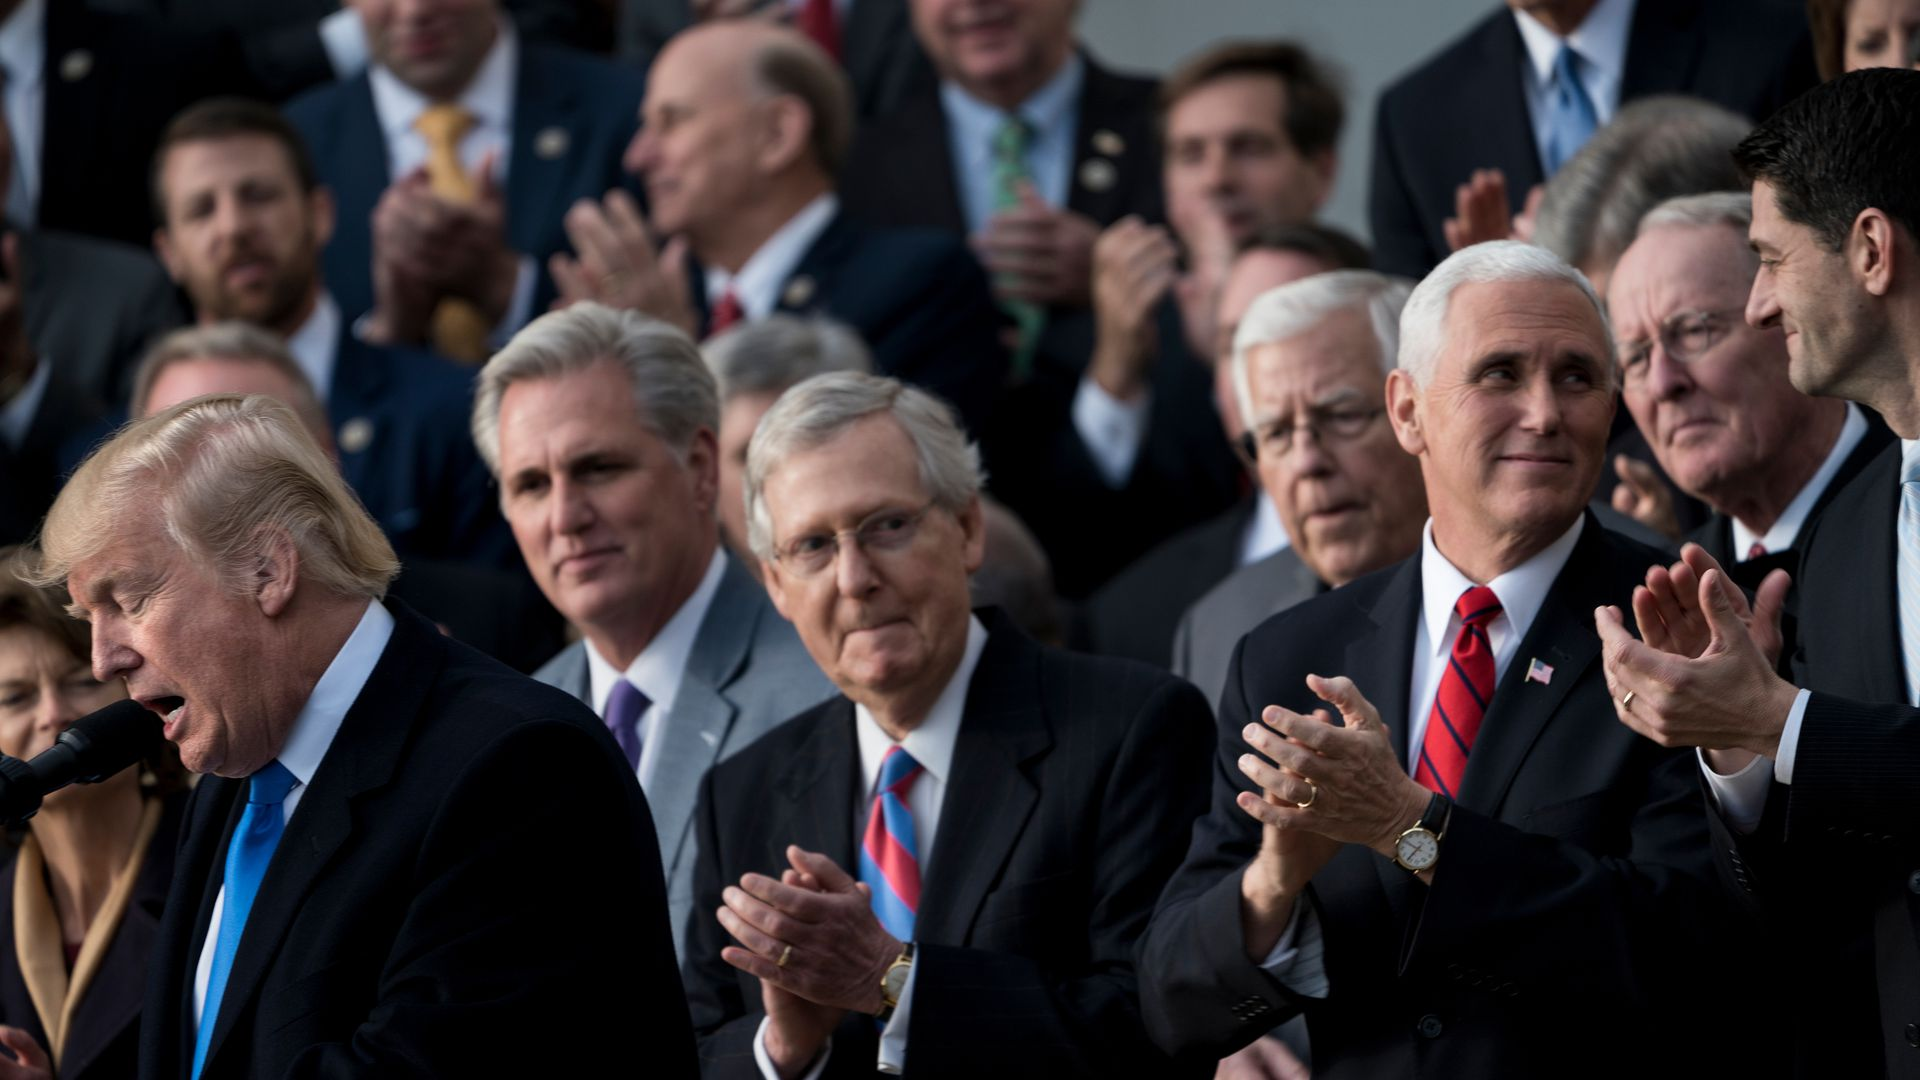 Republican male leaders clapping after passing tax cuts